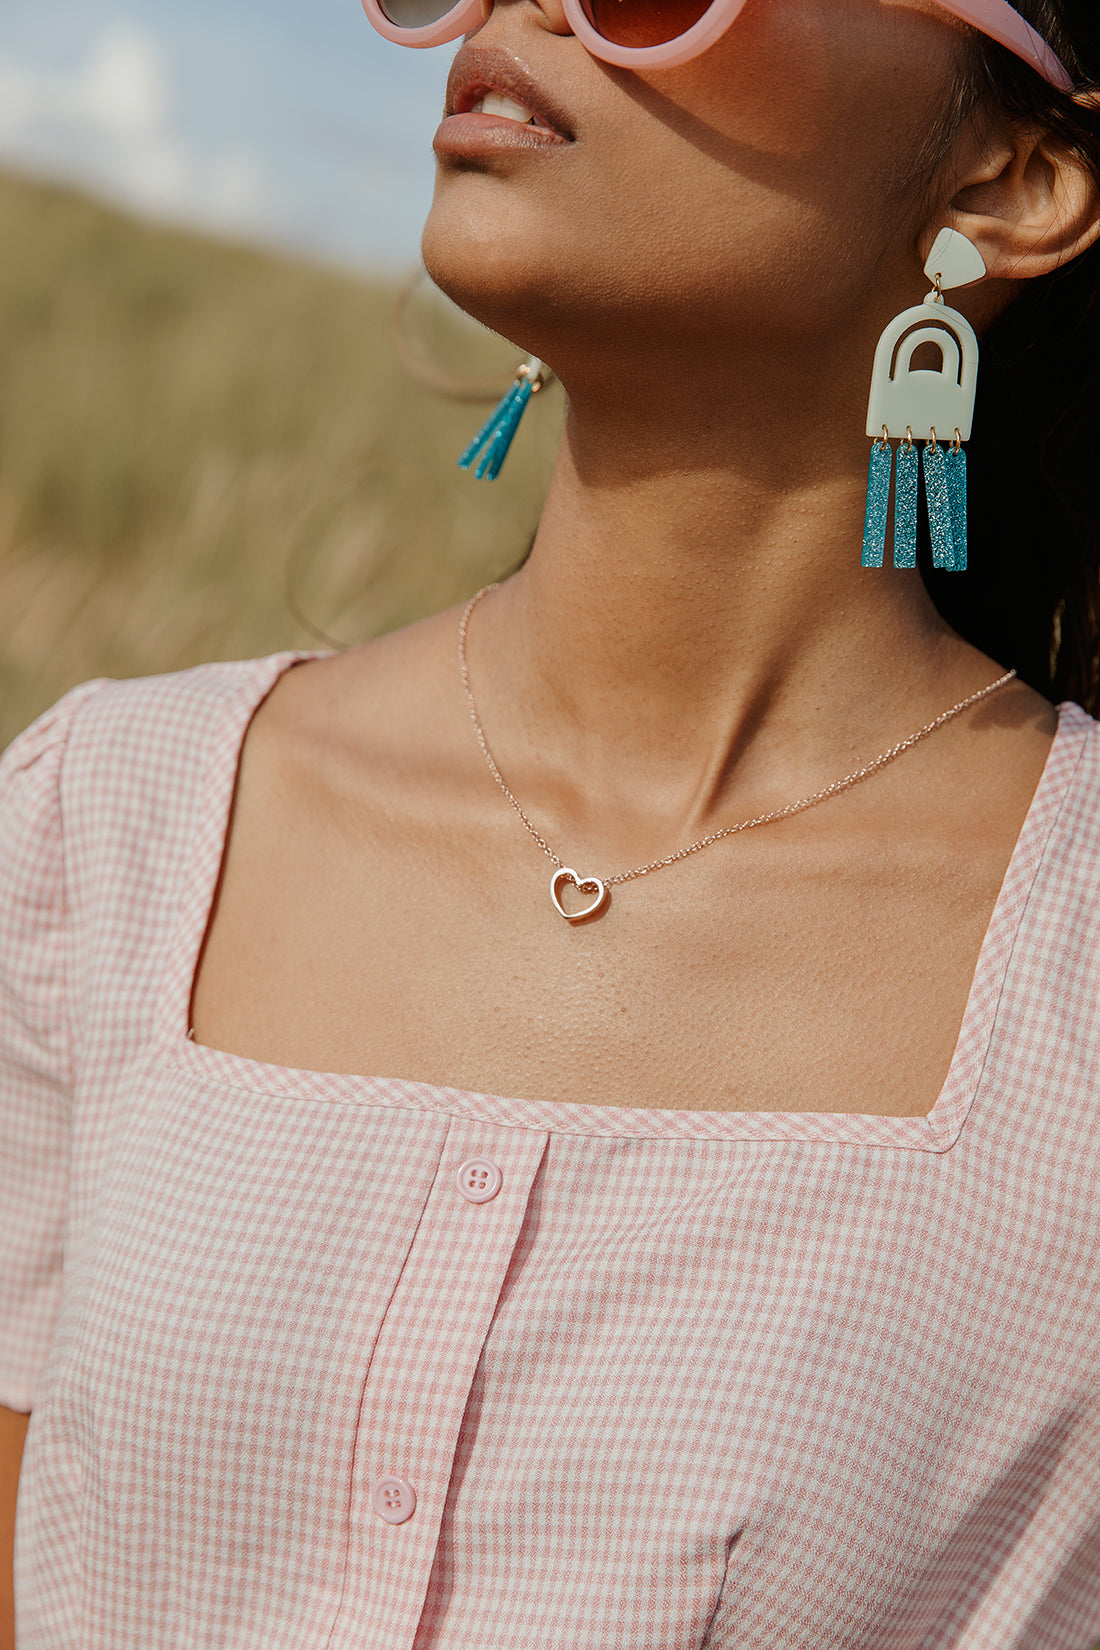 Turquoise Geometric Laser Cut Wind-chime Earrings - Sugar + Style